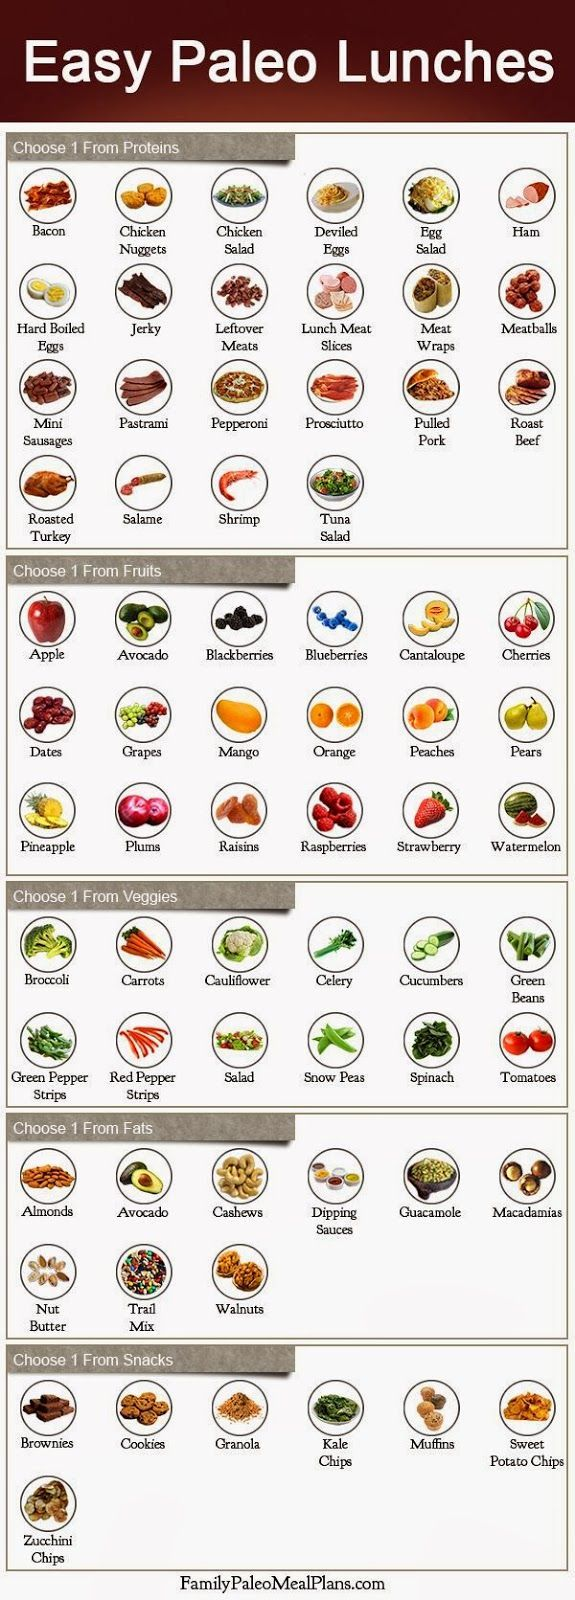 So this is NOT an accurate representation of the paleo lifestyle...think minimal fruit (thats a sugar) and certainly no snacks with every meal (by the way, most of those are desserts)...but I appreciate the concept of more healthy, less potato chip for